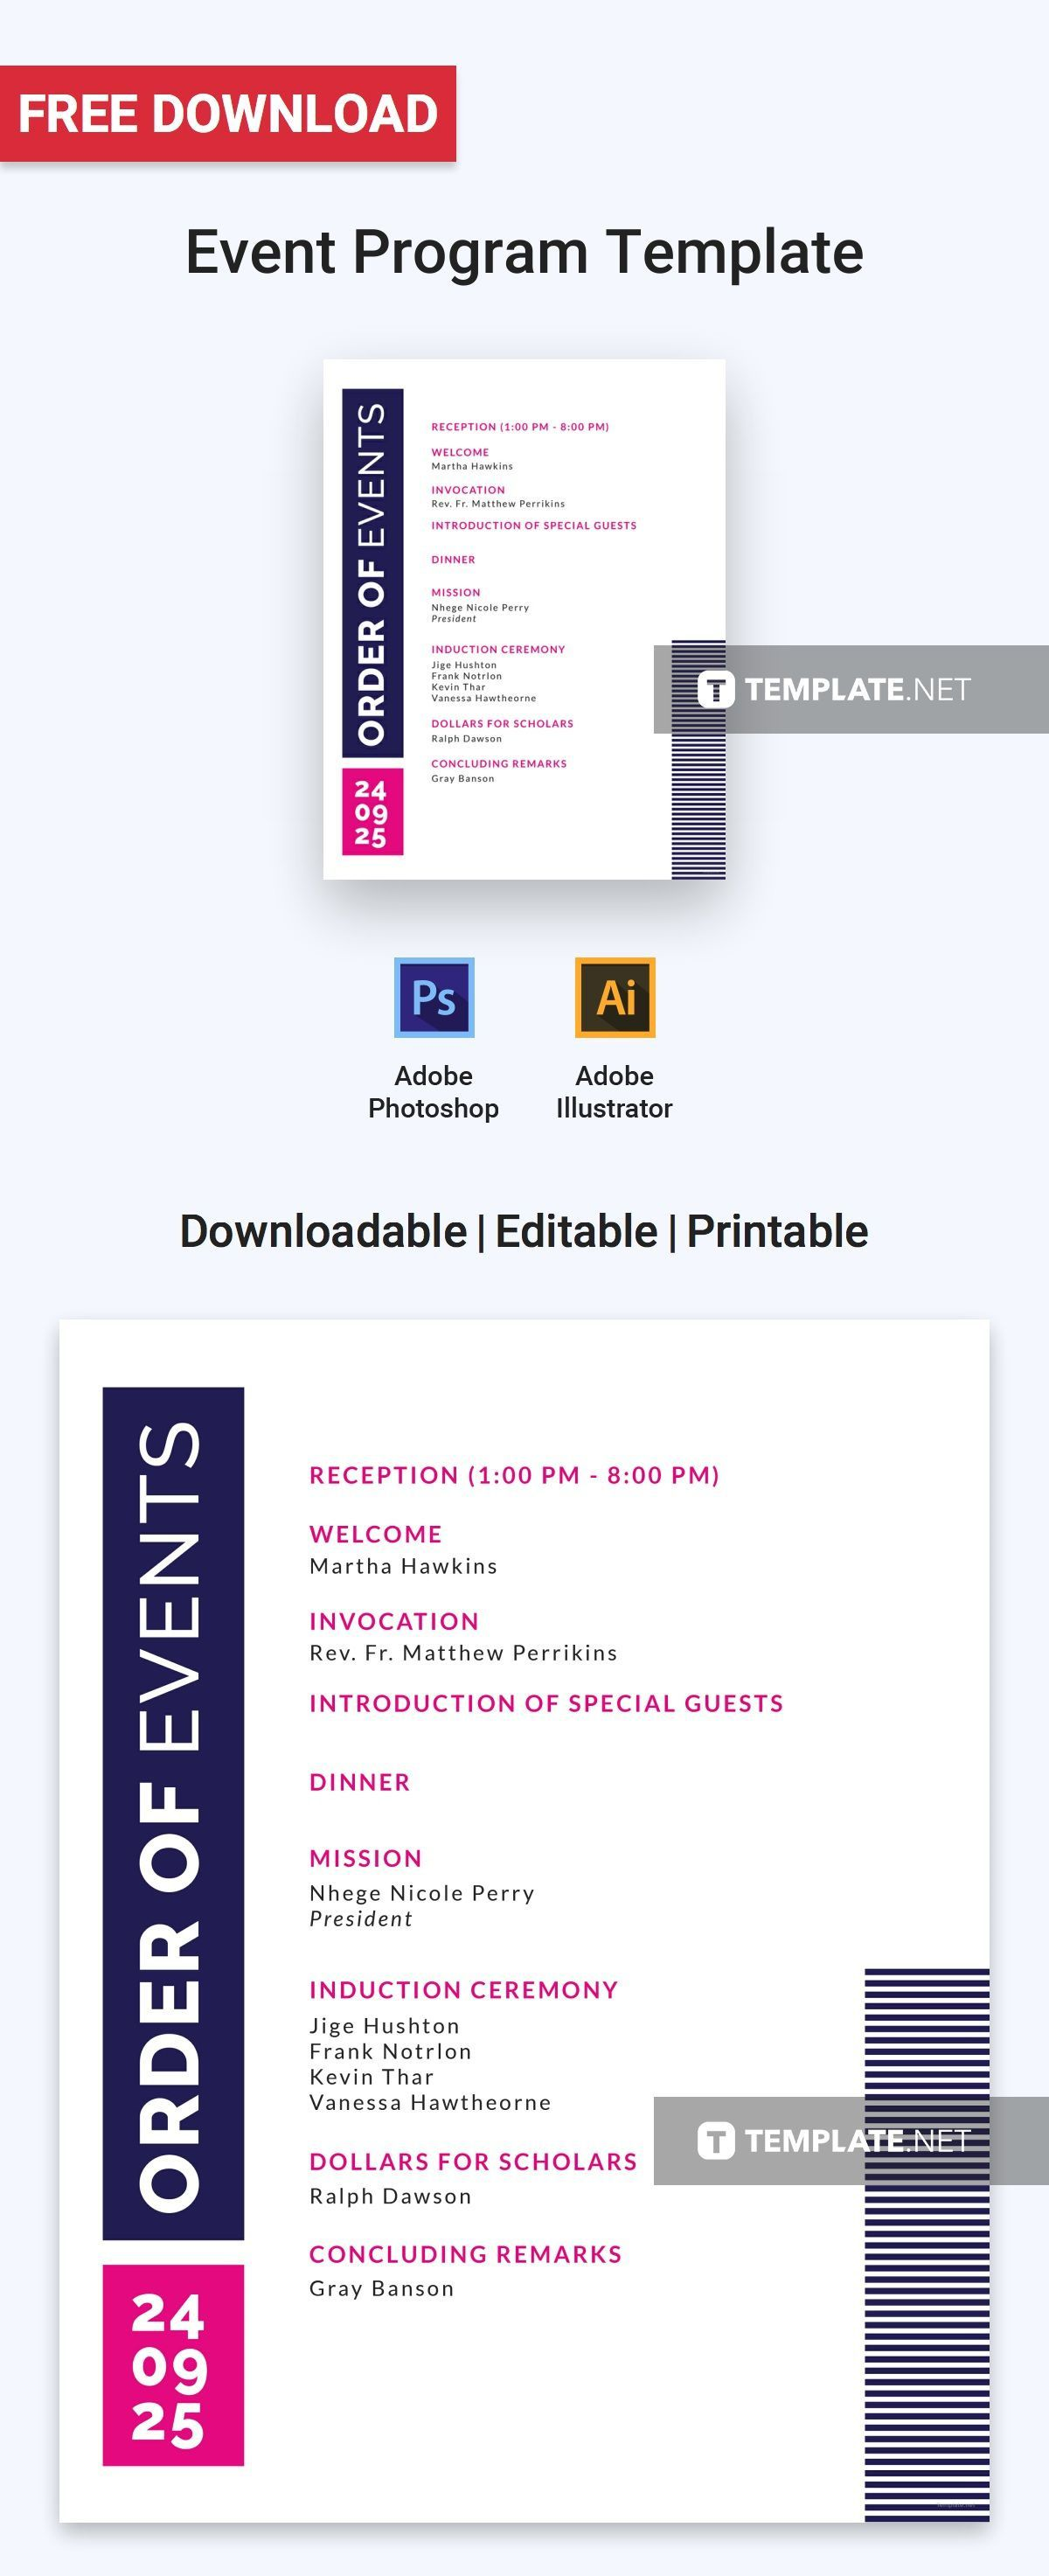 005 Unbelievable Printable Event Program Template High Definition  Free DownloadFull